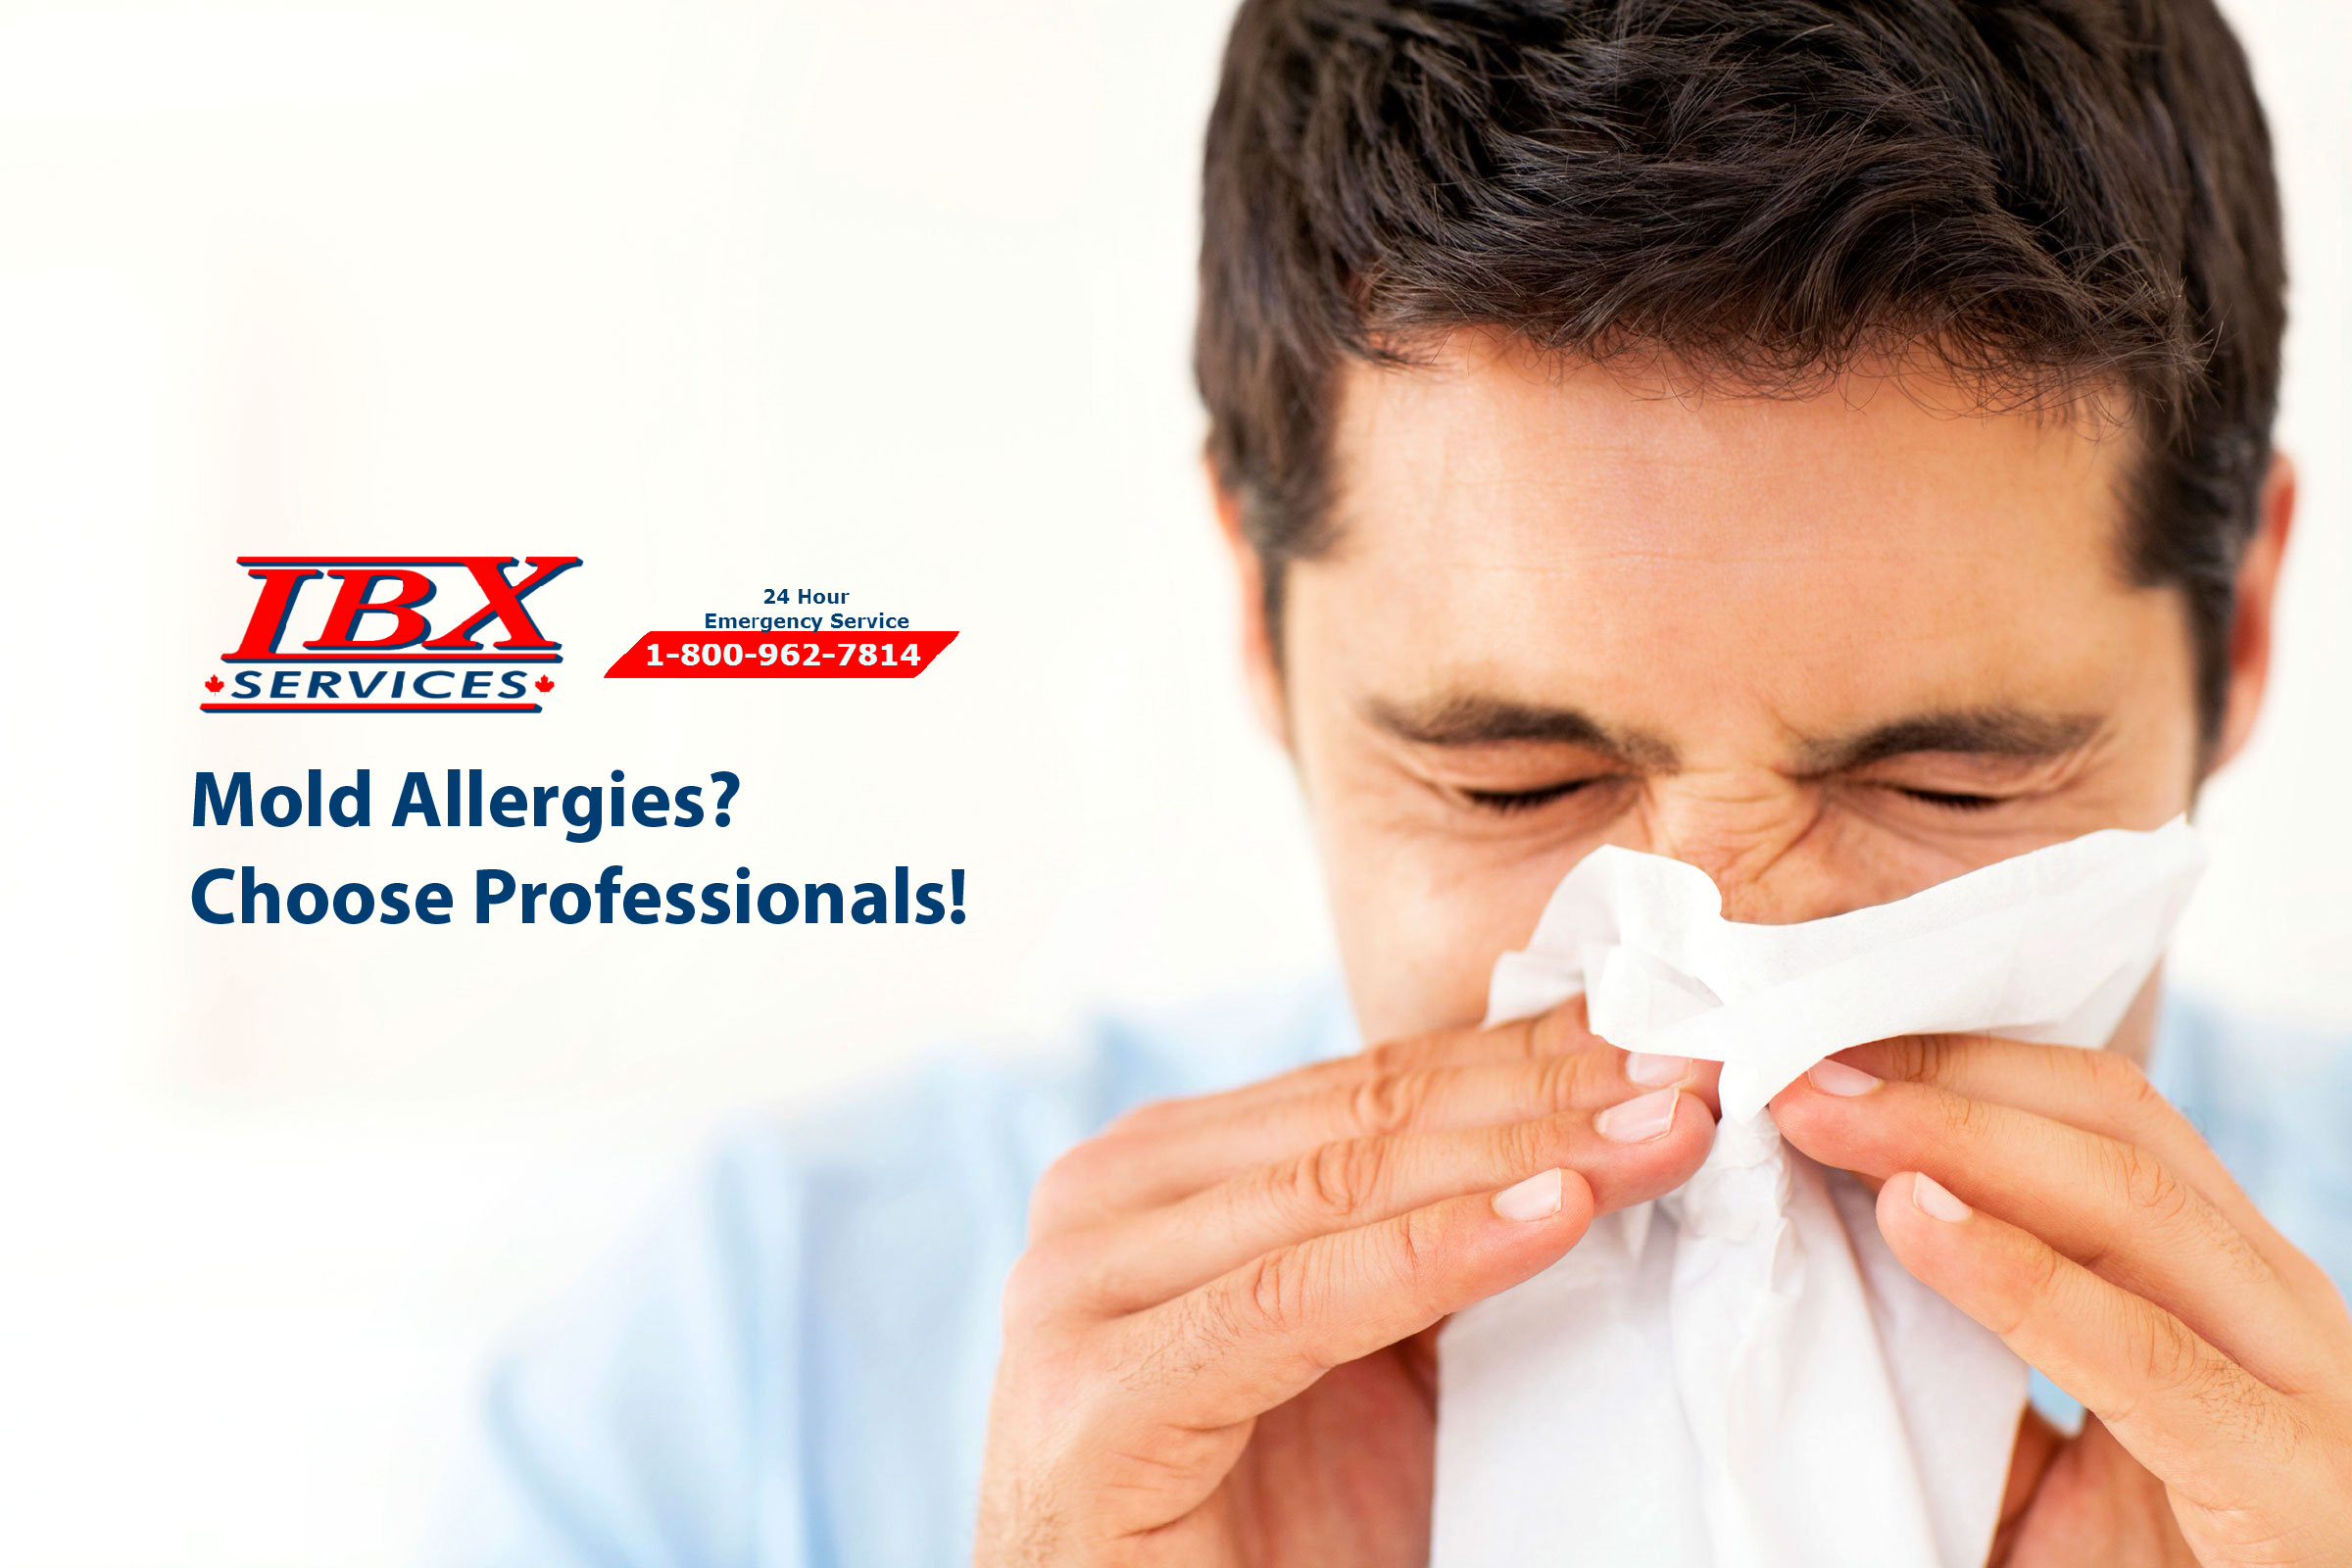 Mold Allergies? Choose Professionals!